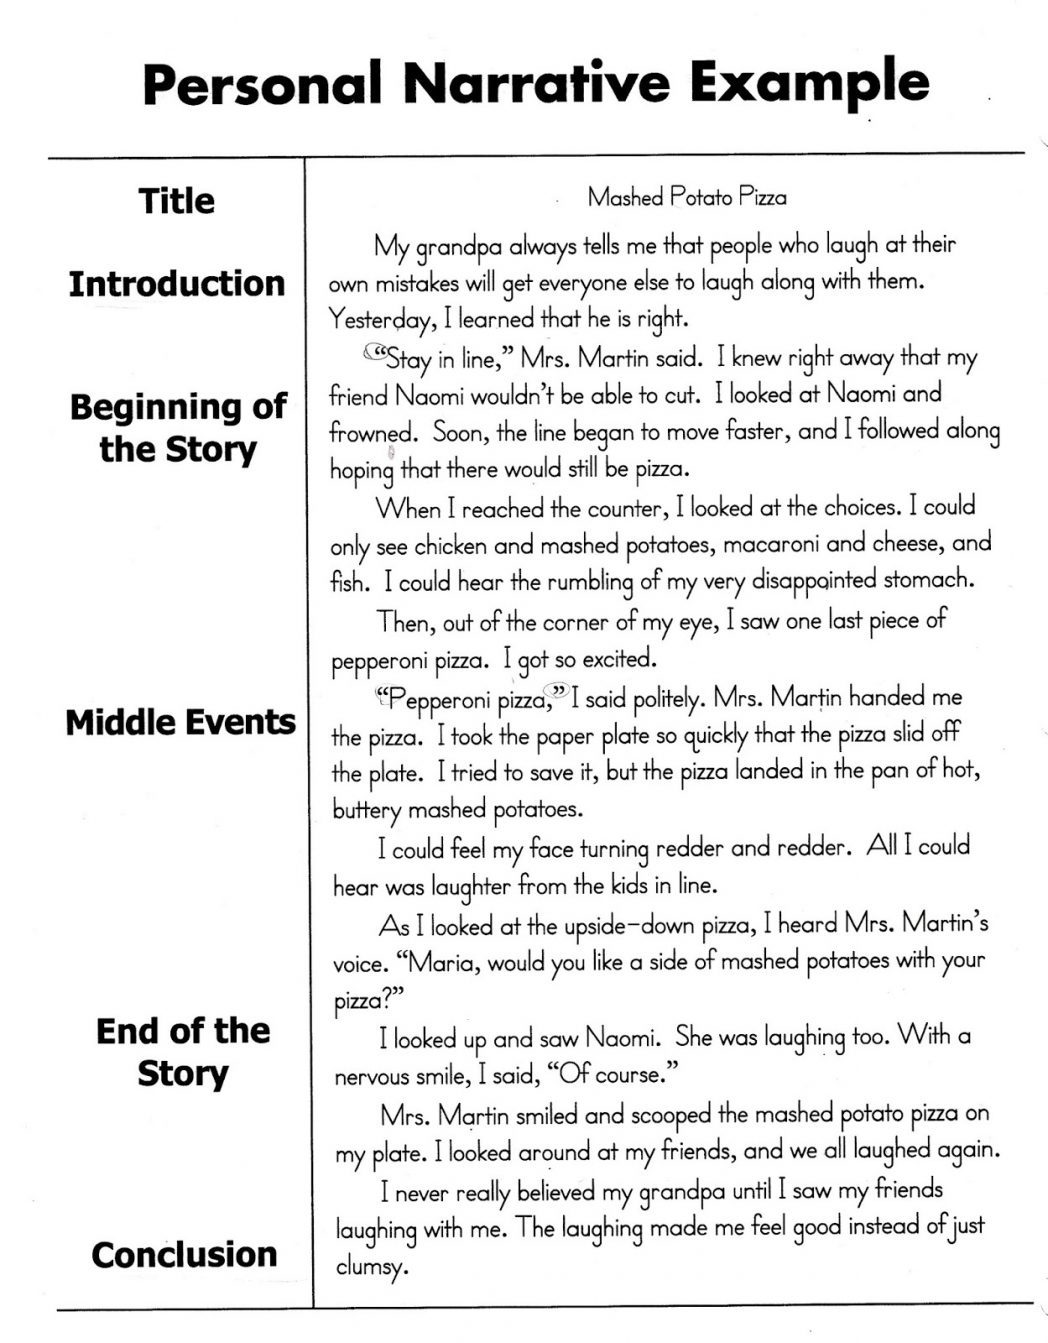 011 Macbeth Essay Topic Sample Narrative High School Topics For College Students Personal Prompts 1048x1343 Fascinating Writing 5th Grade Common Core 4th Full